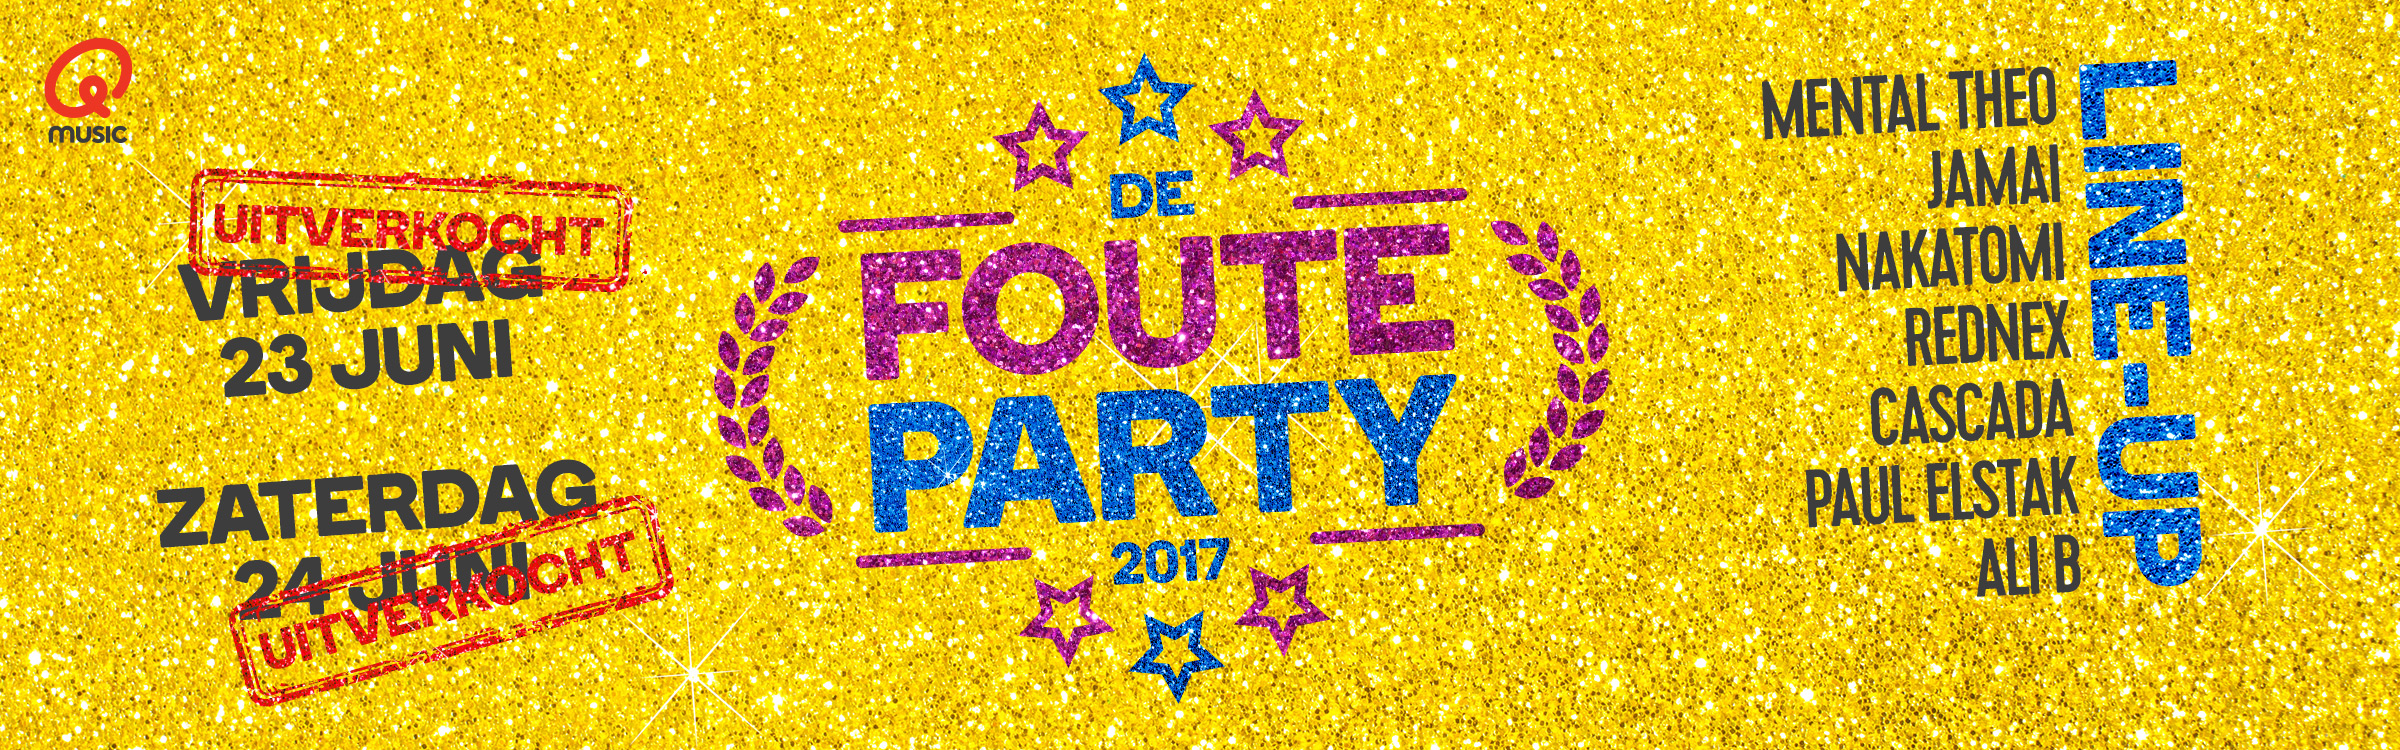 Qmusic actionheader fouteparty2017 uitverkocht